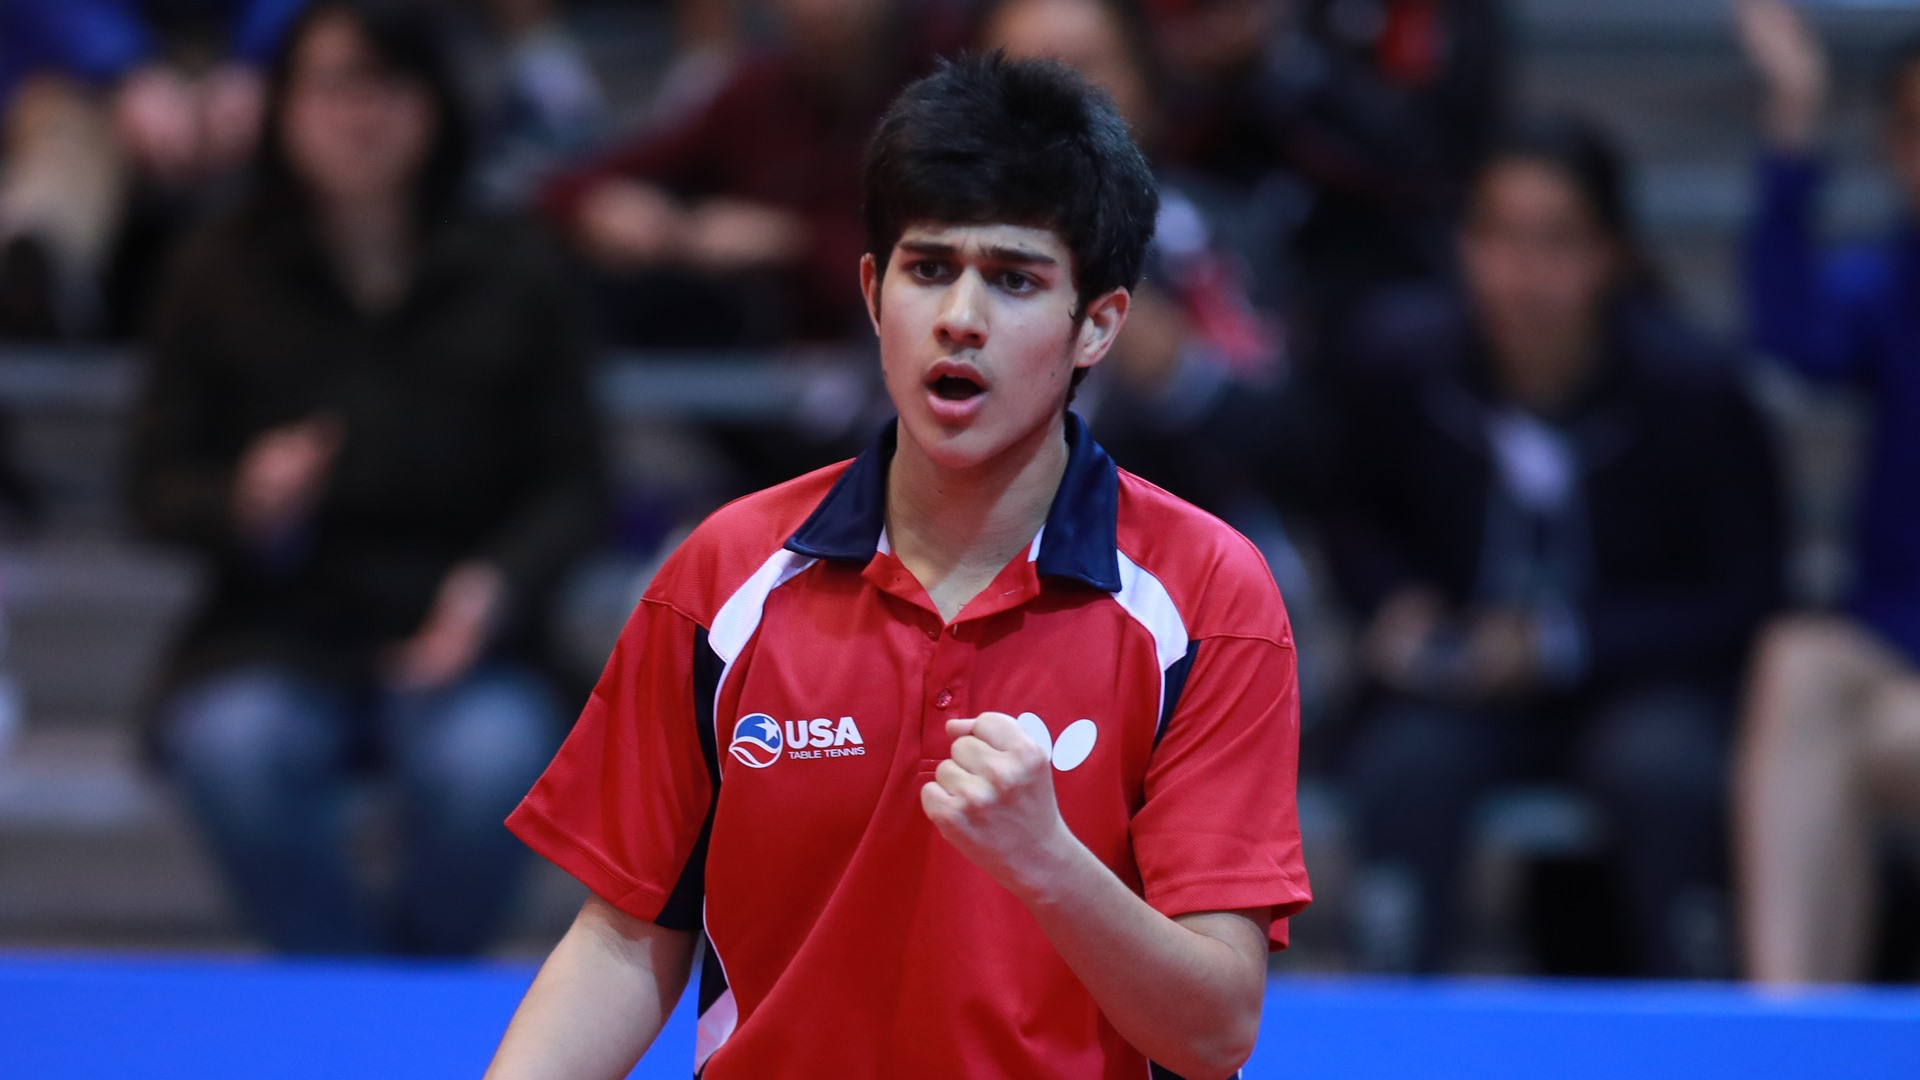 Table tennis prodigy determined to live up to favourite tag